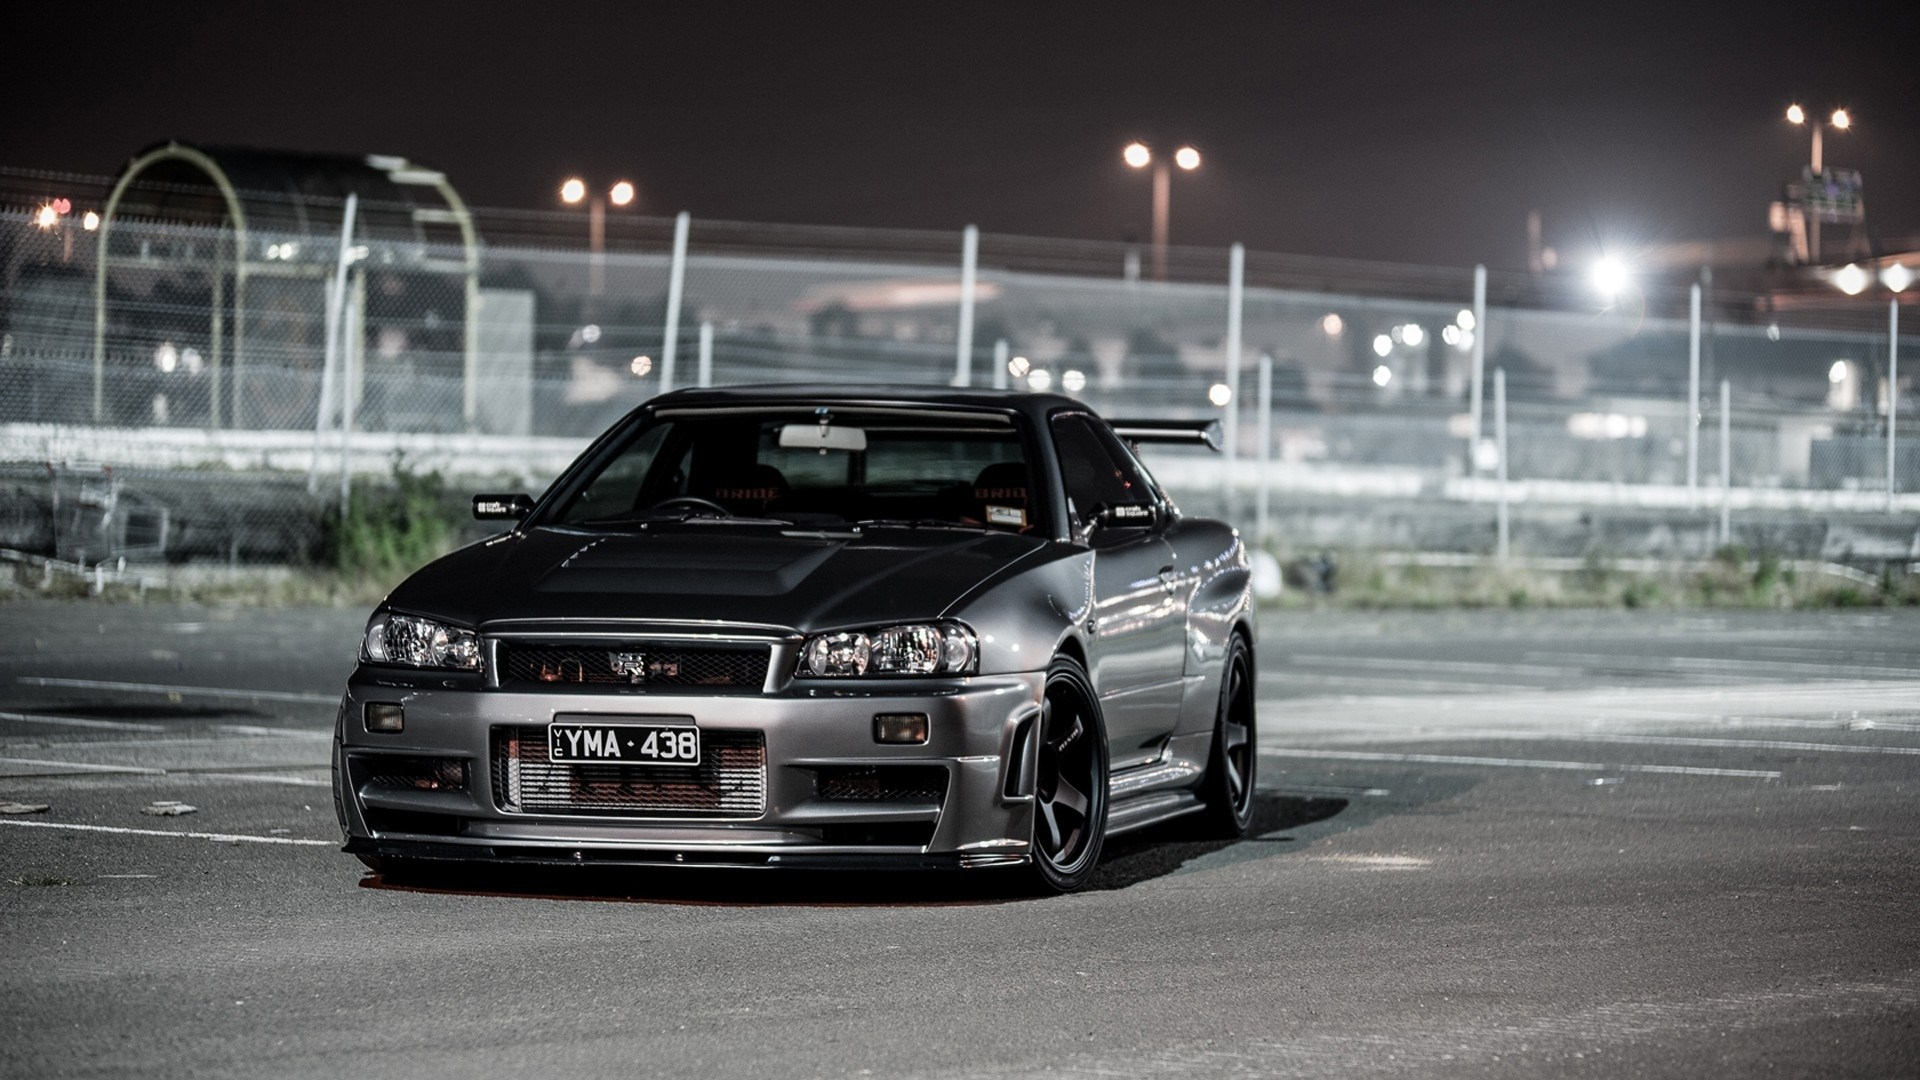 Black Nissan Skyline